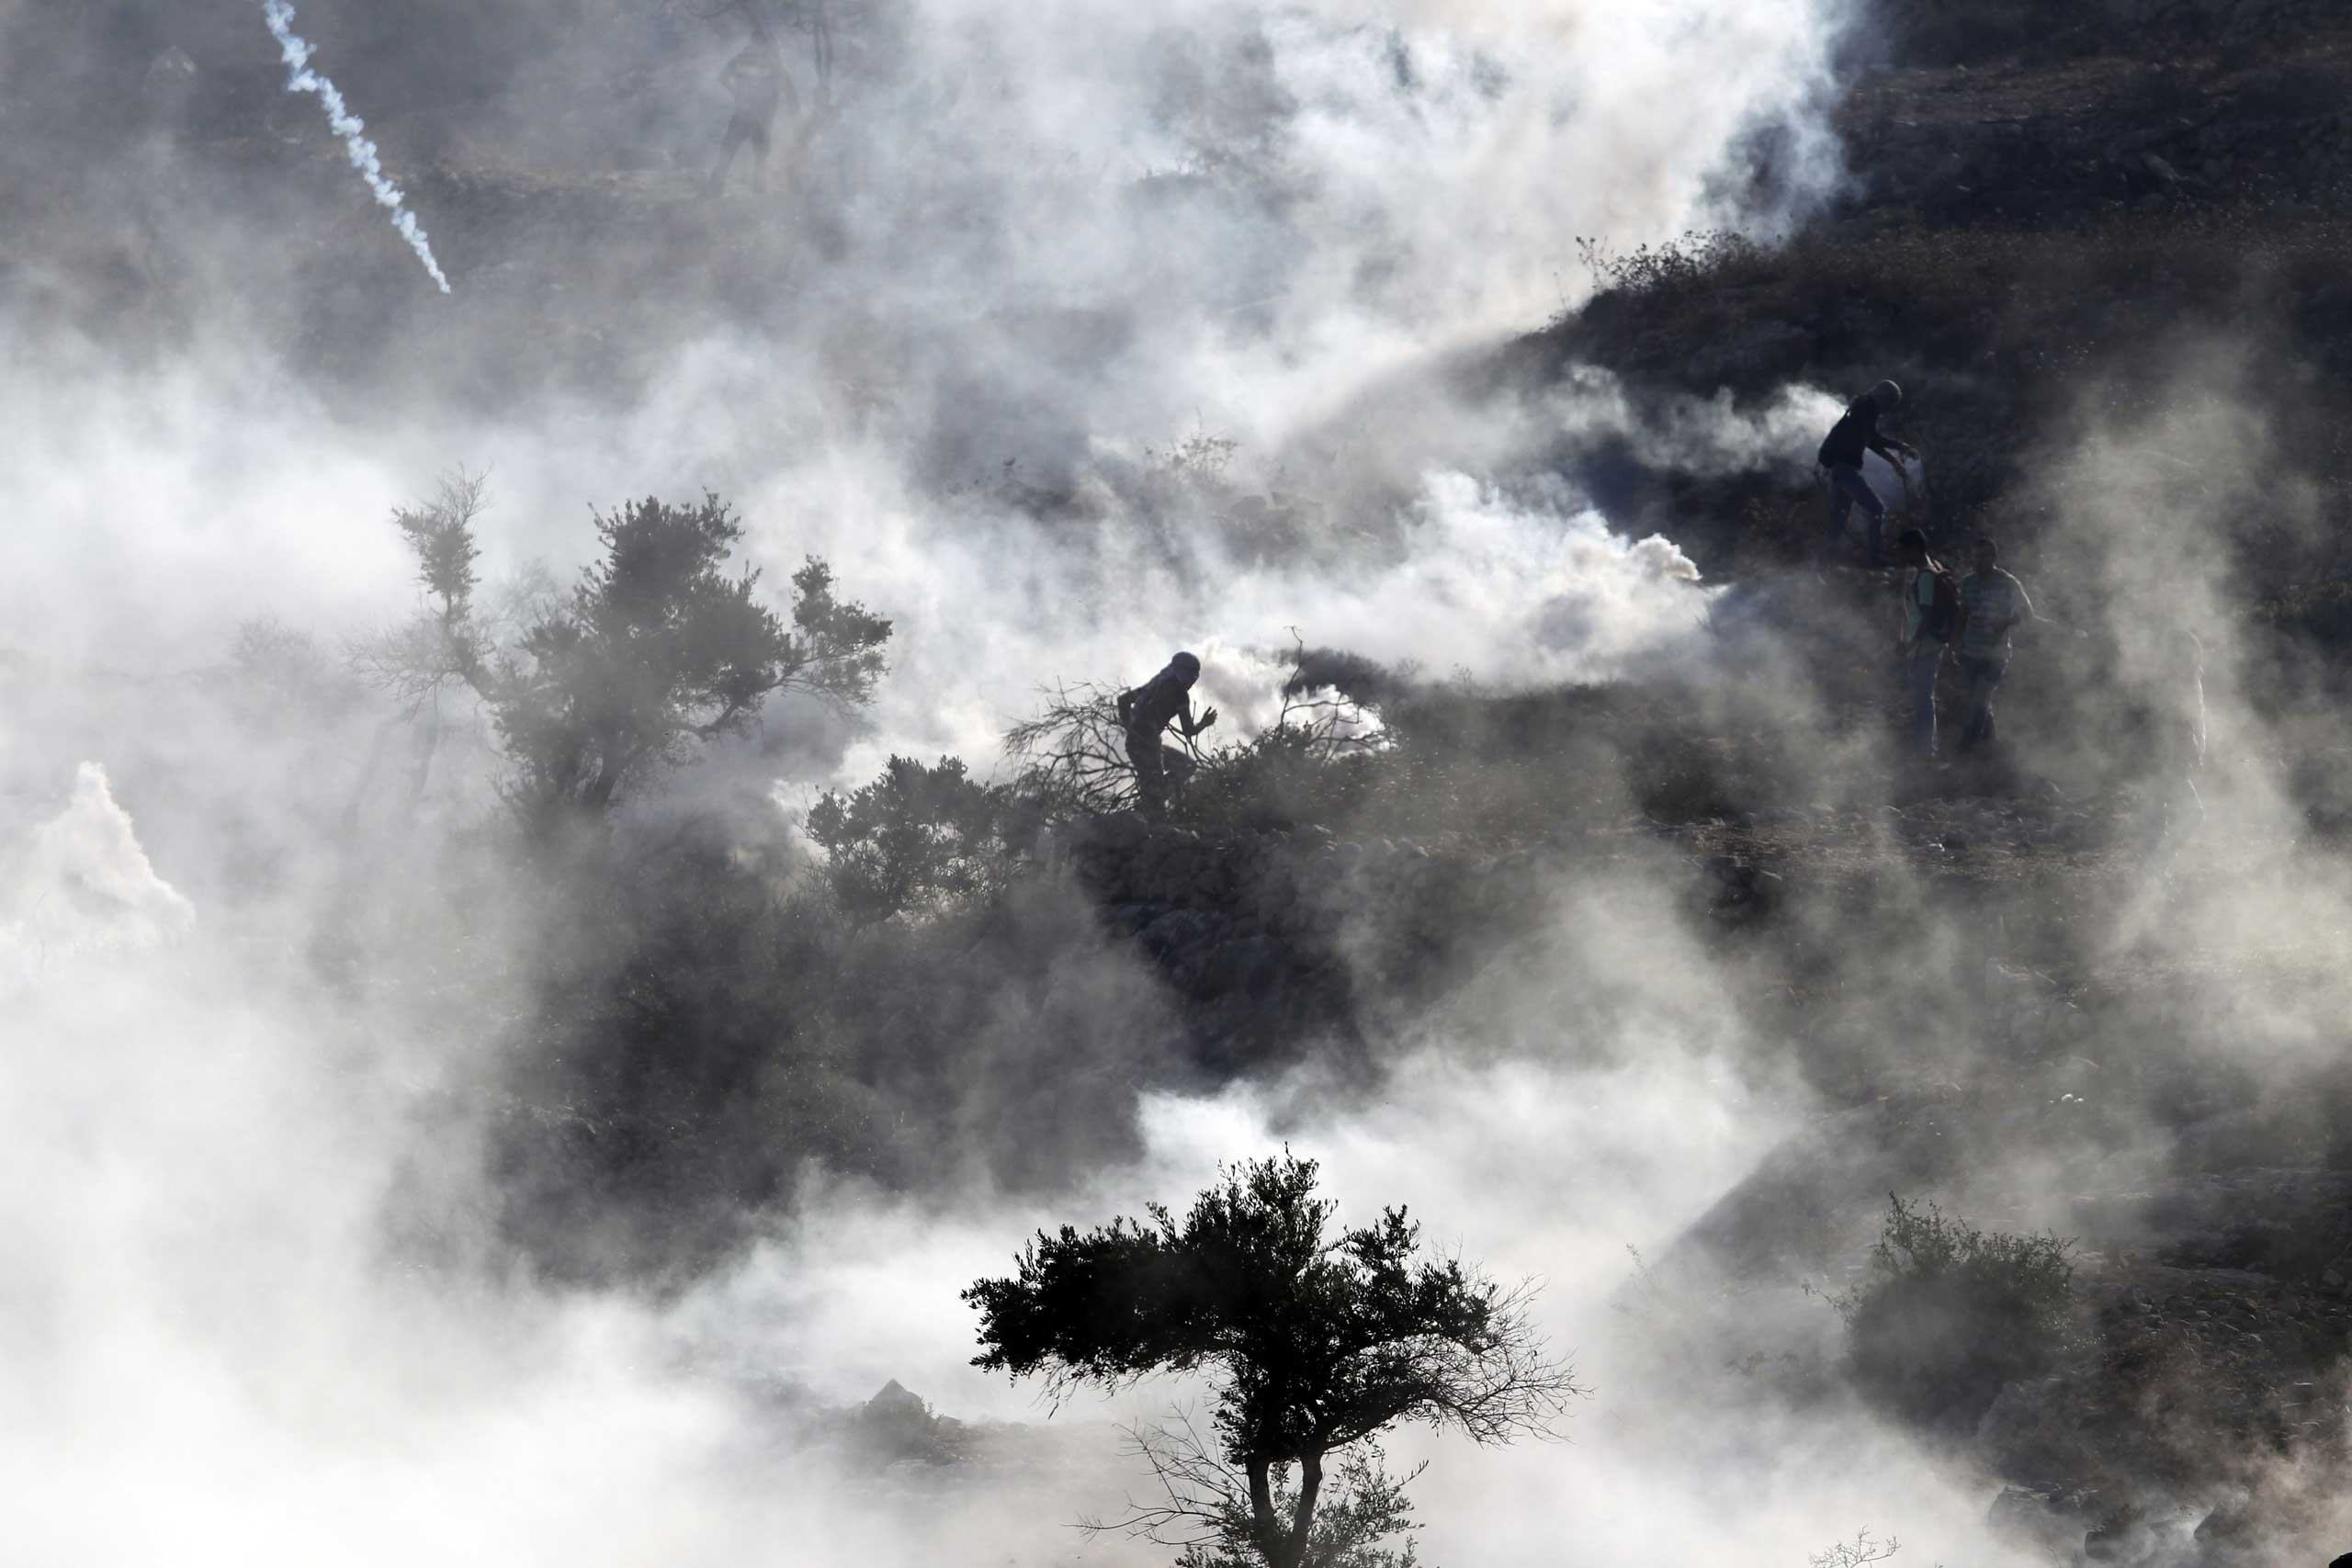 Oct. 17, 2014. Palestinian protesters run amid smoke to take cover after Israeli security forces (unseen) fired tear gas during clashes close to the Israeli Ofer military prison, near the West Bank village of Betunia following a protest after Israeli authorities restricted access to the al-Aqsa mosque compound in Jerusalem. Non-Muslim visits to Al-Aqsa complex are permitted and regulated by police, but Jews are not allowed to pray at the site for fear it could trigger major disturbances.